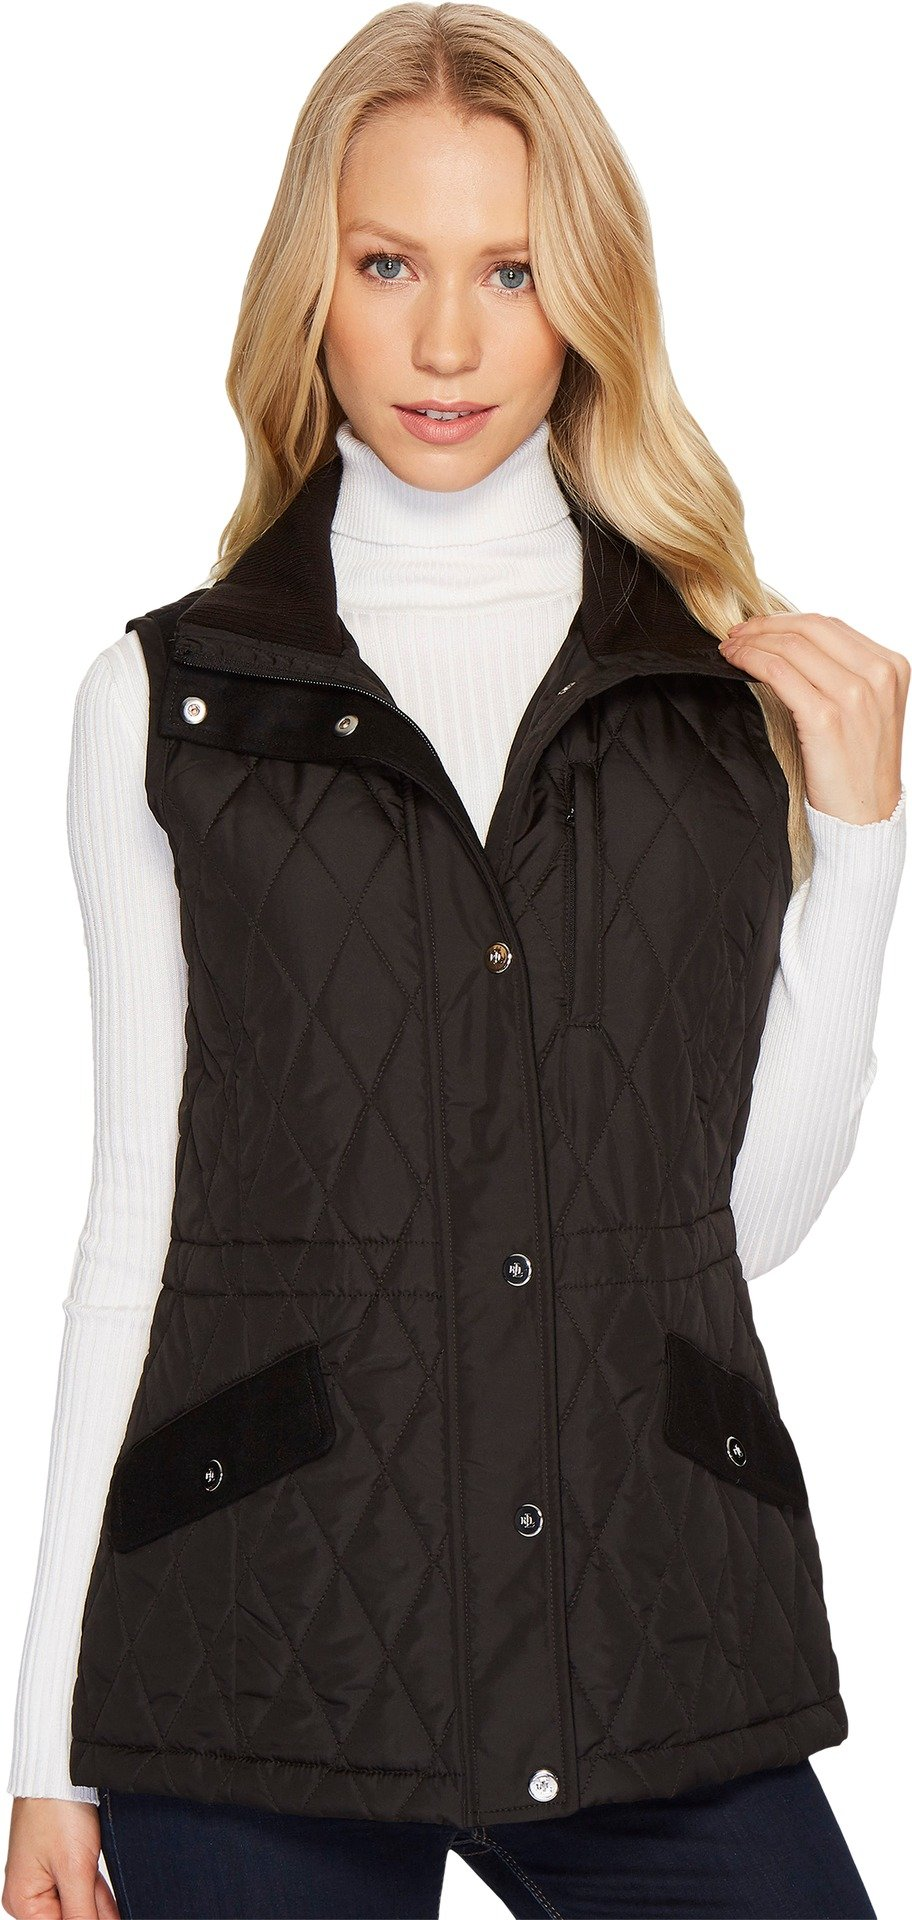 Lauren by Ralph Lauren Womens Vest w/Wool Combo Black LG One Size